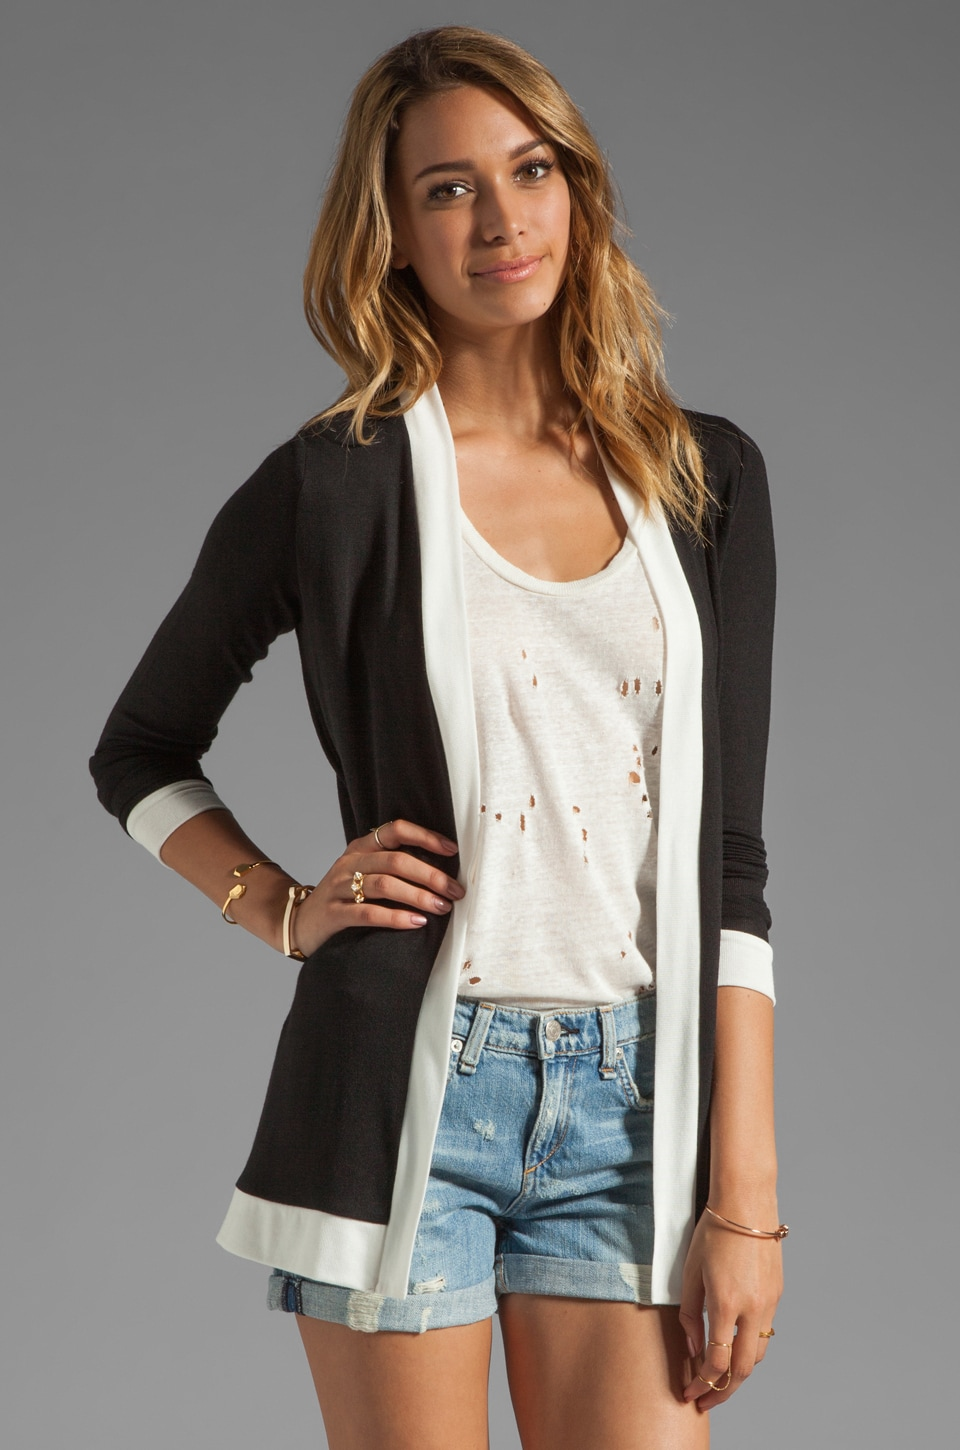 Whetherly Stella Cardigan in Black/Creme